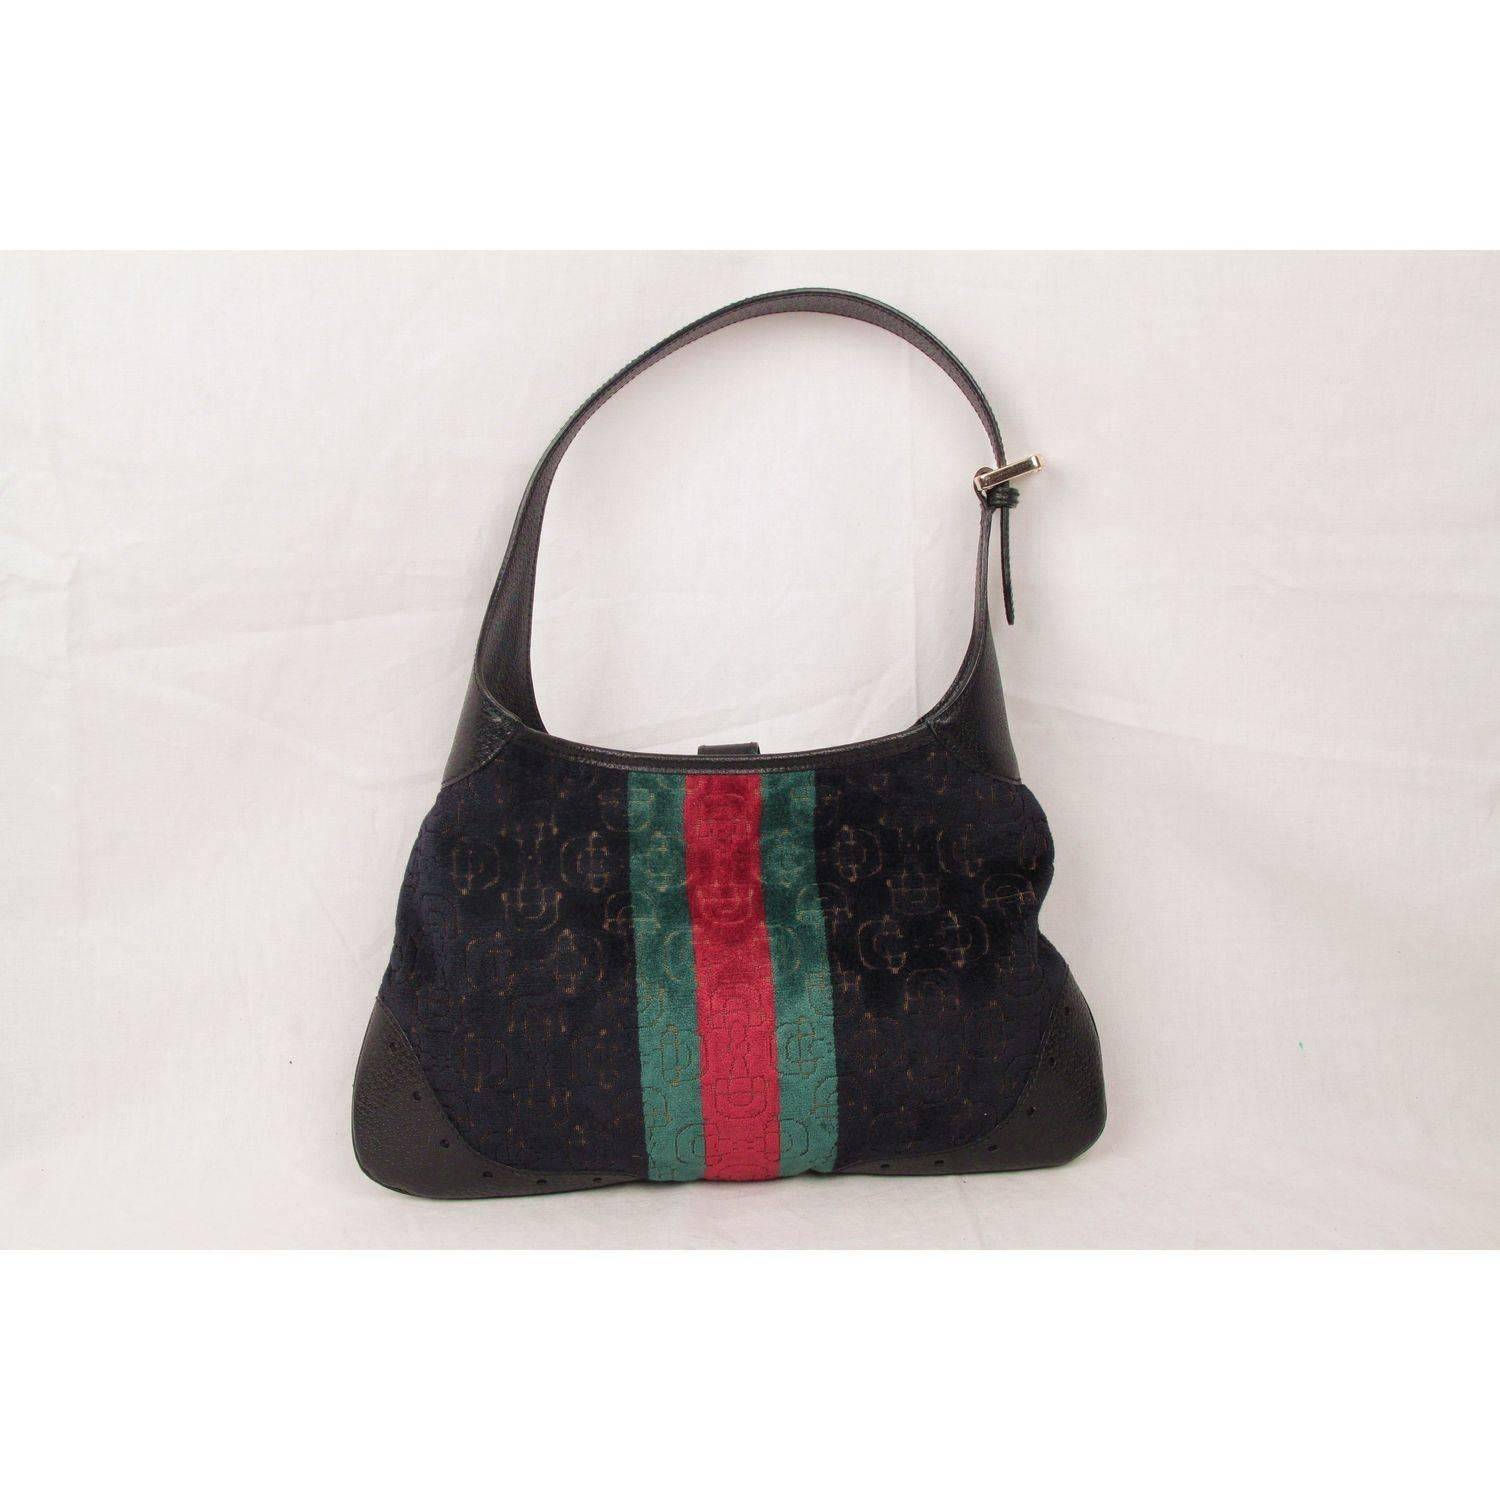 Gucci Limited Edition Black Cut Out Velvet Hobo Jackie O Bag cAAv9Ie3XQ